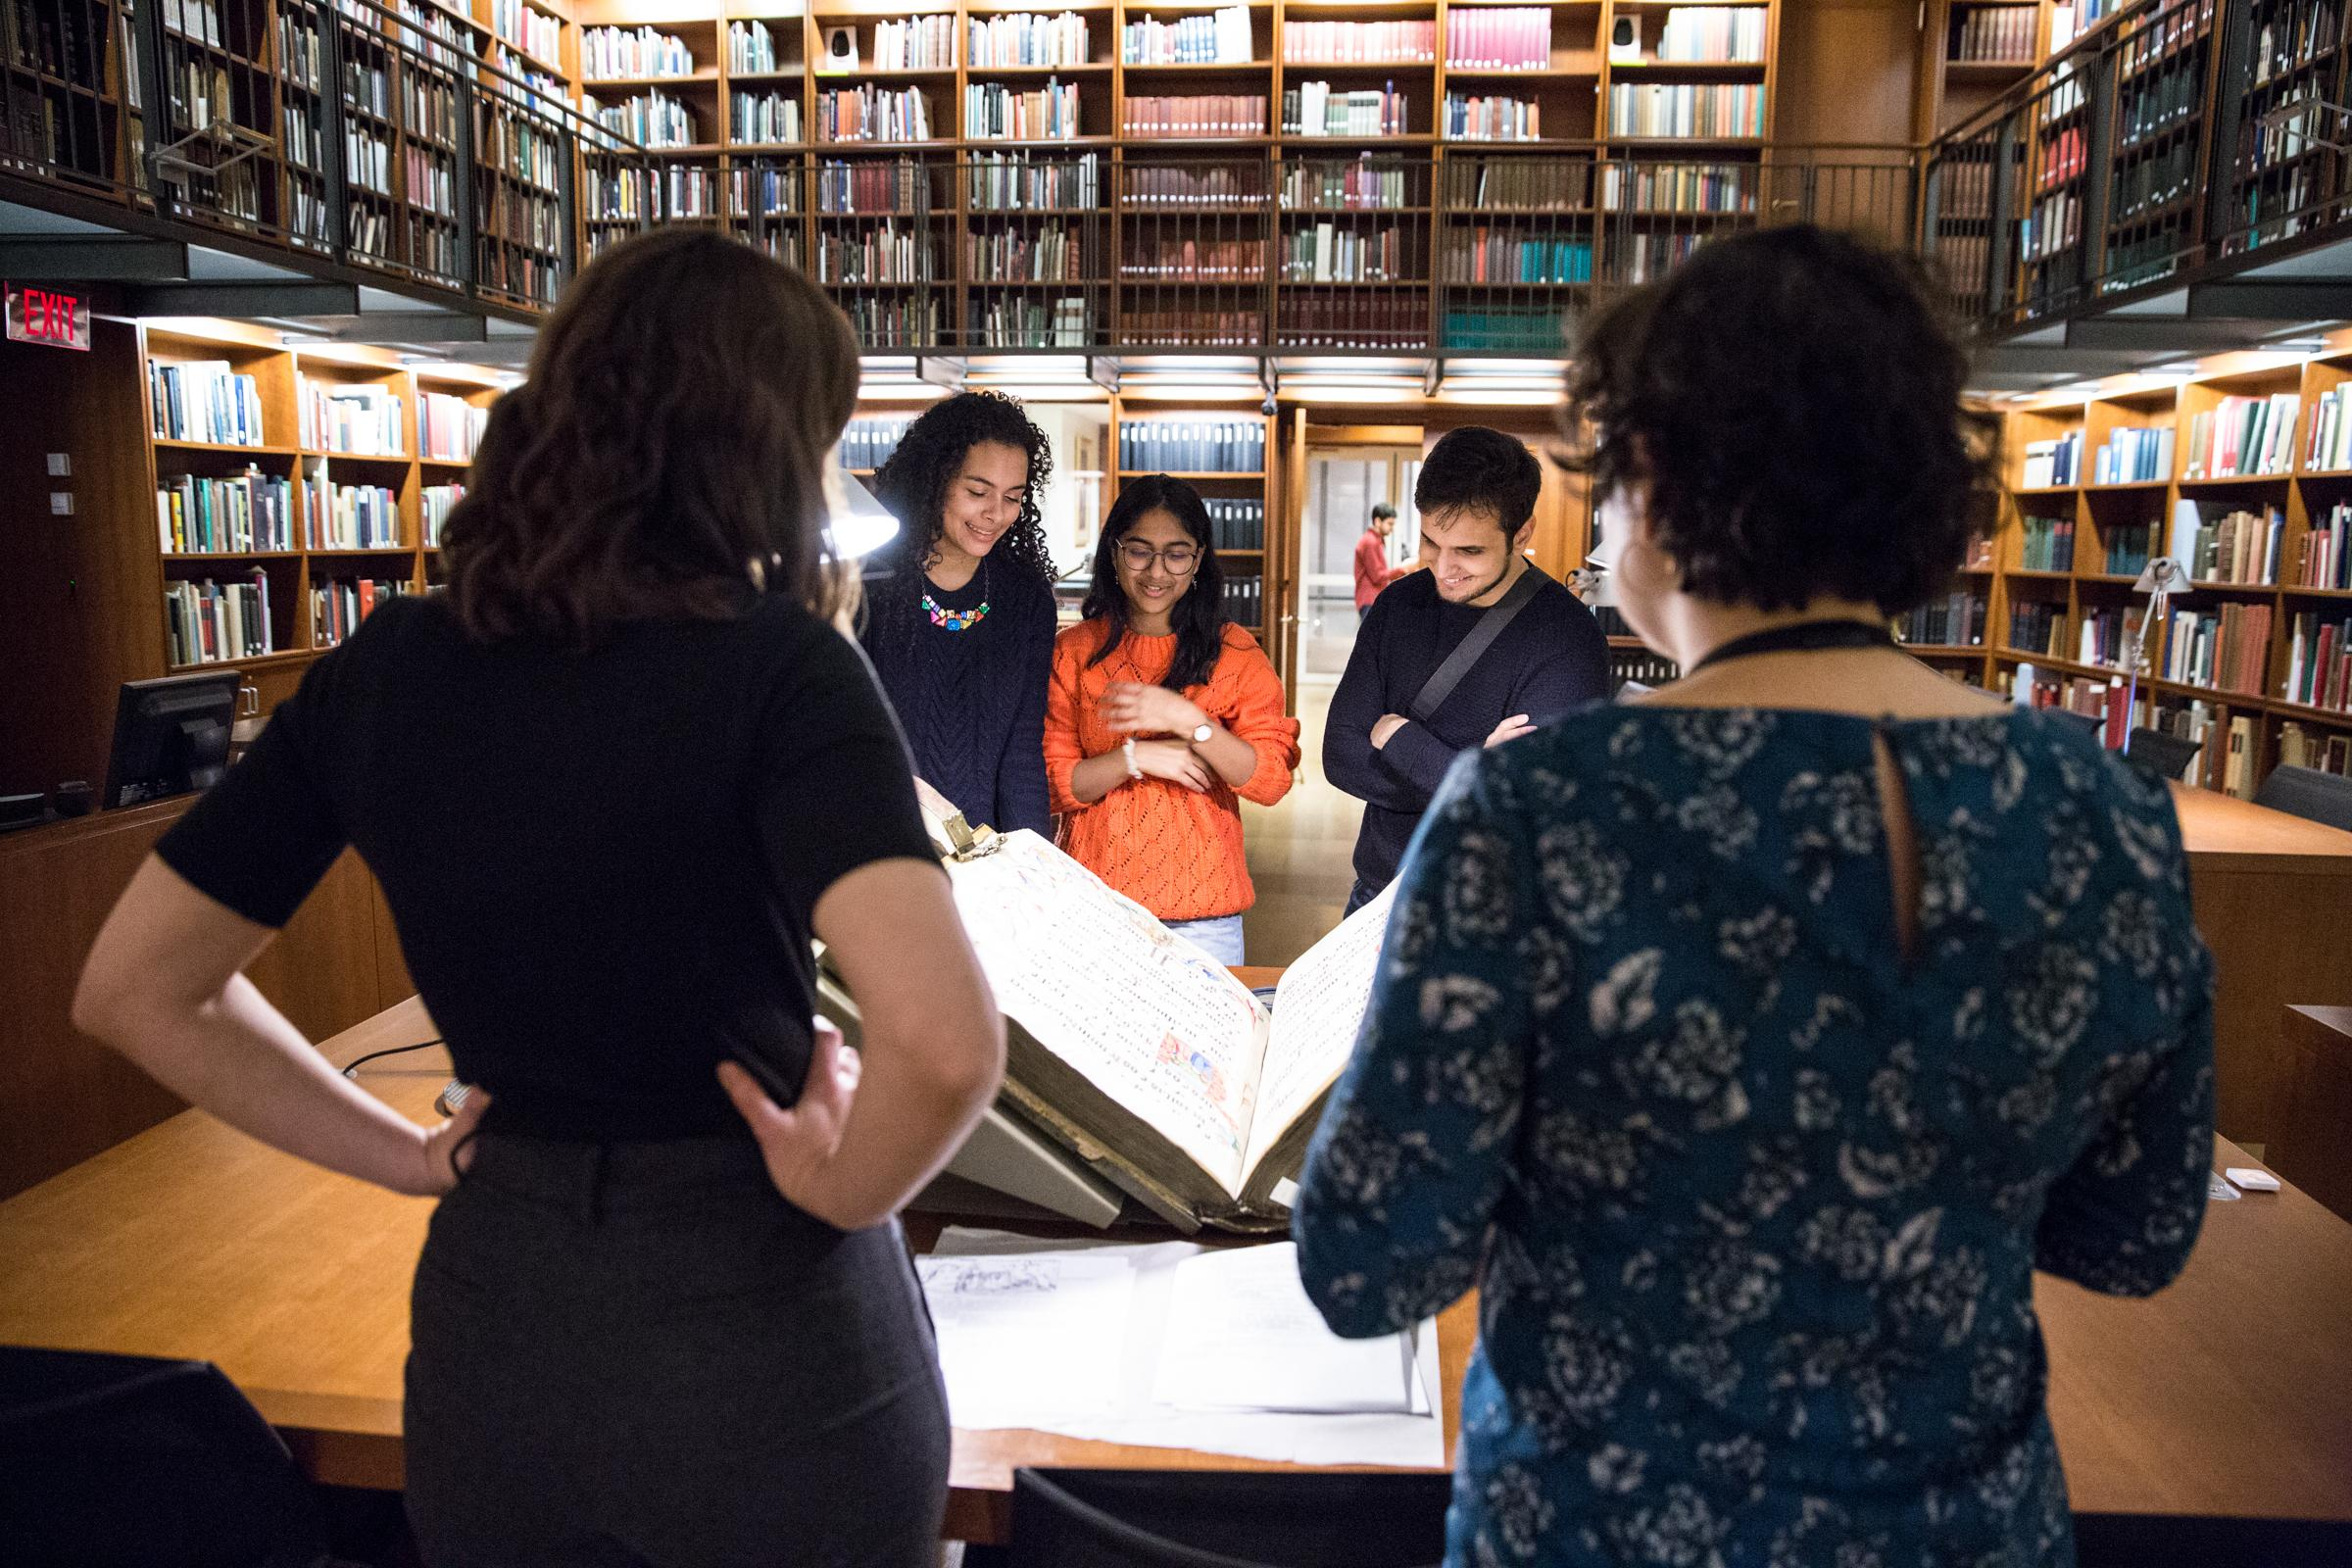 College Open House: Museum & Library Careers